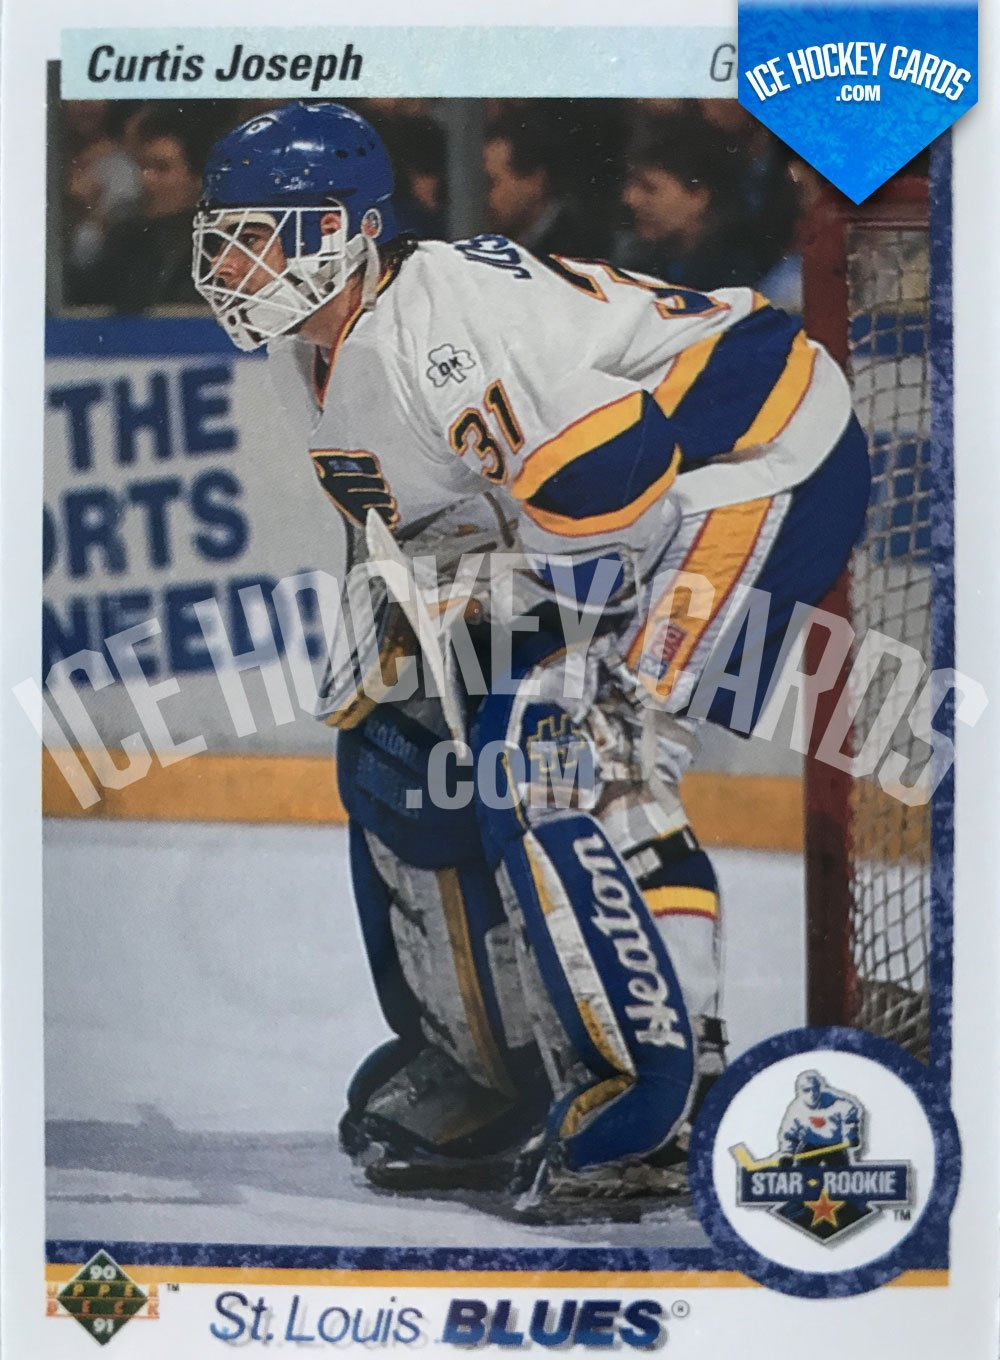 Upper Deck - 90-91 - Curtis Joseph Star Rookie Card